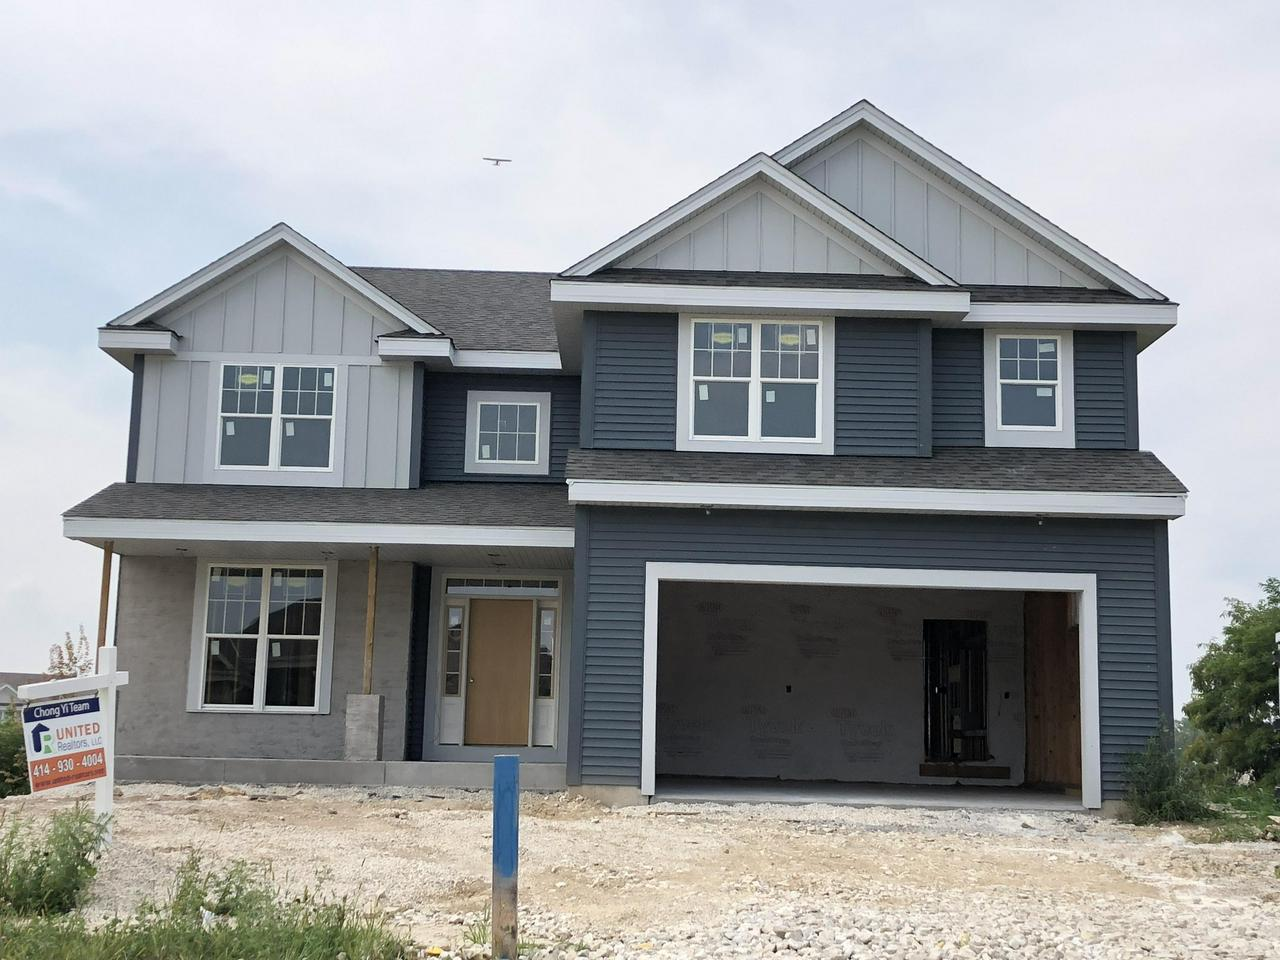 Welcome to Hartford!This 4 Bedroom, 2.5BA Colonial under construction. Home features:2nd floor laundry, Gas fireplace in LIV, KIT-DIN w/island, granite counters & pantry, Formal DIN RM & egress window in basement w/plumbed for a full bath,  Master BR w/Walk-In-Closets & private bath w/tiled shower & dual sinks. **Tiles floors in baths/laminate floors in KIT & DIN** We offer 30 year fixed Construction loan, lock your rate in now for life of the loan! Reserve this home today.